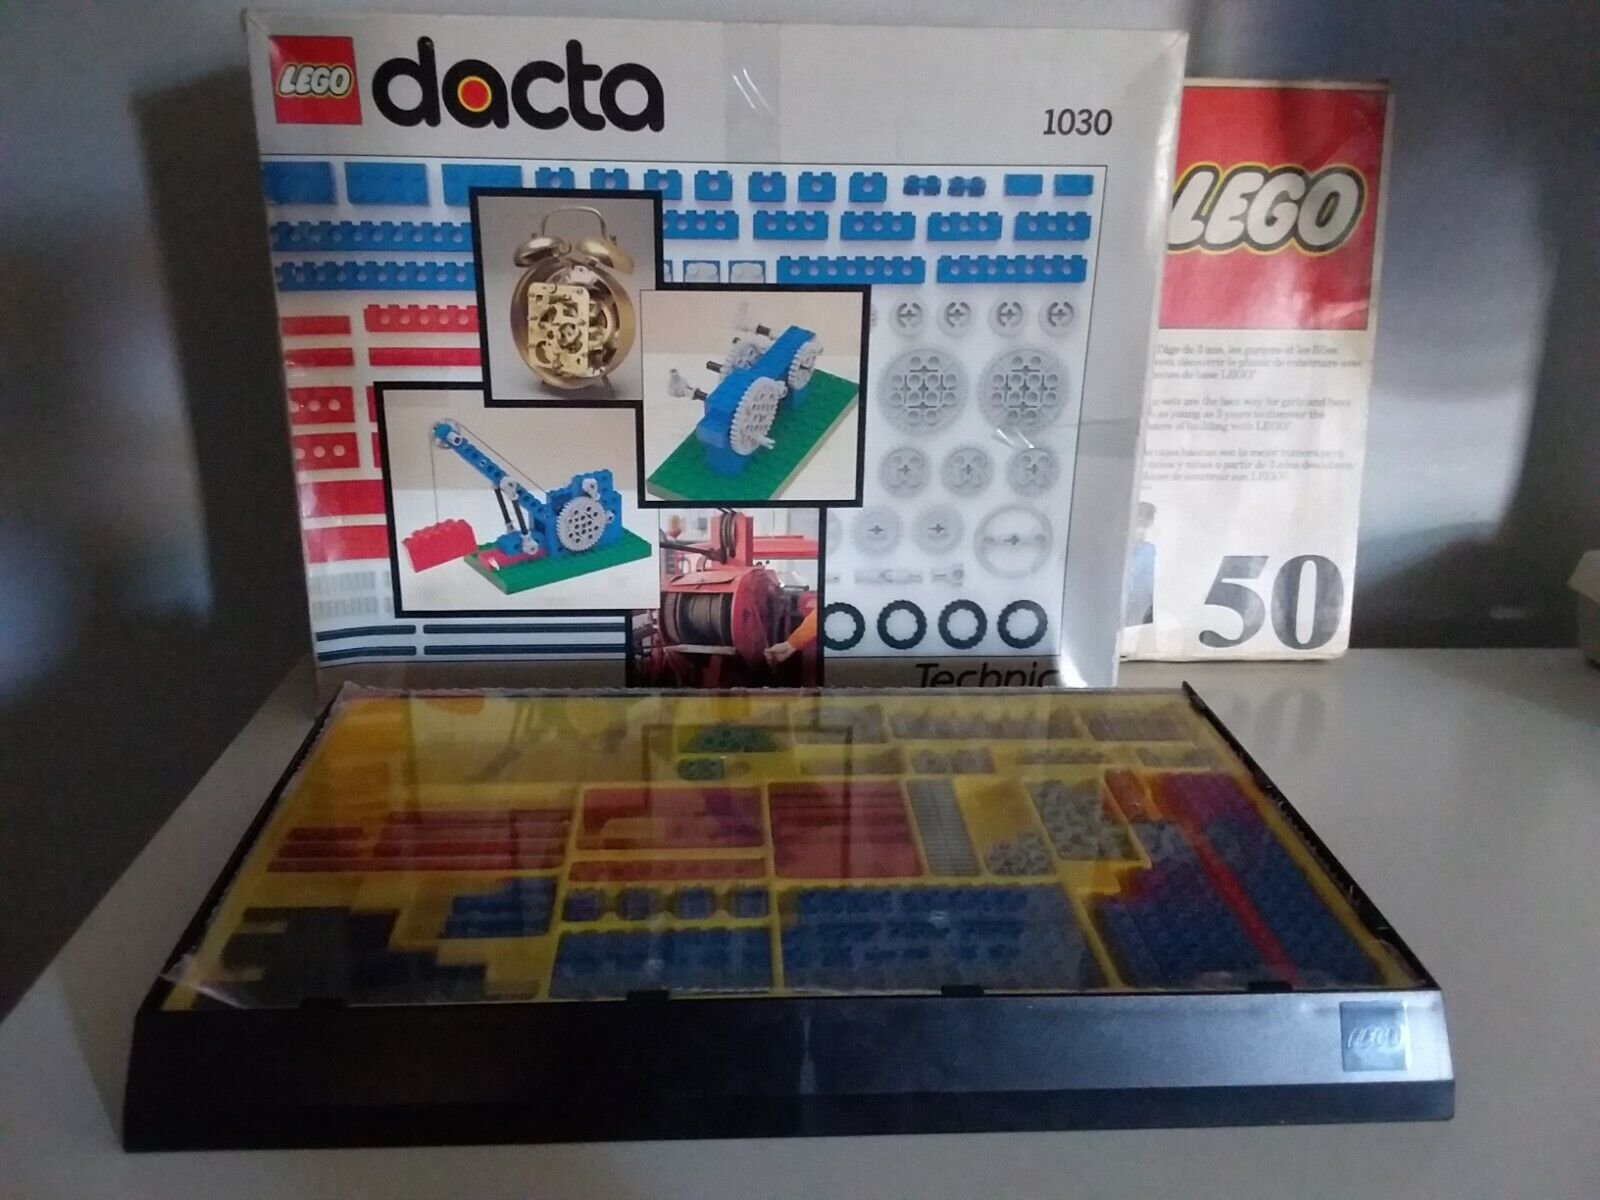 Lego Lego Lego Dacta  Technic 1030 with original box, plus bonus Lego 50 Vintage box d2fc80